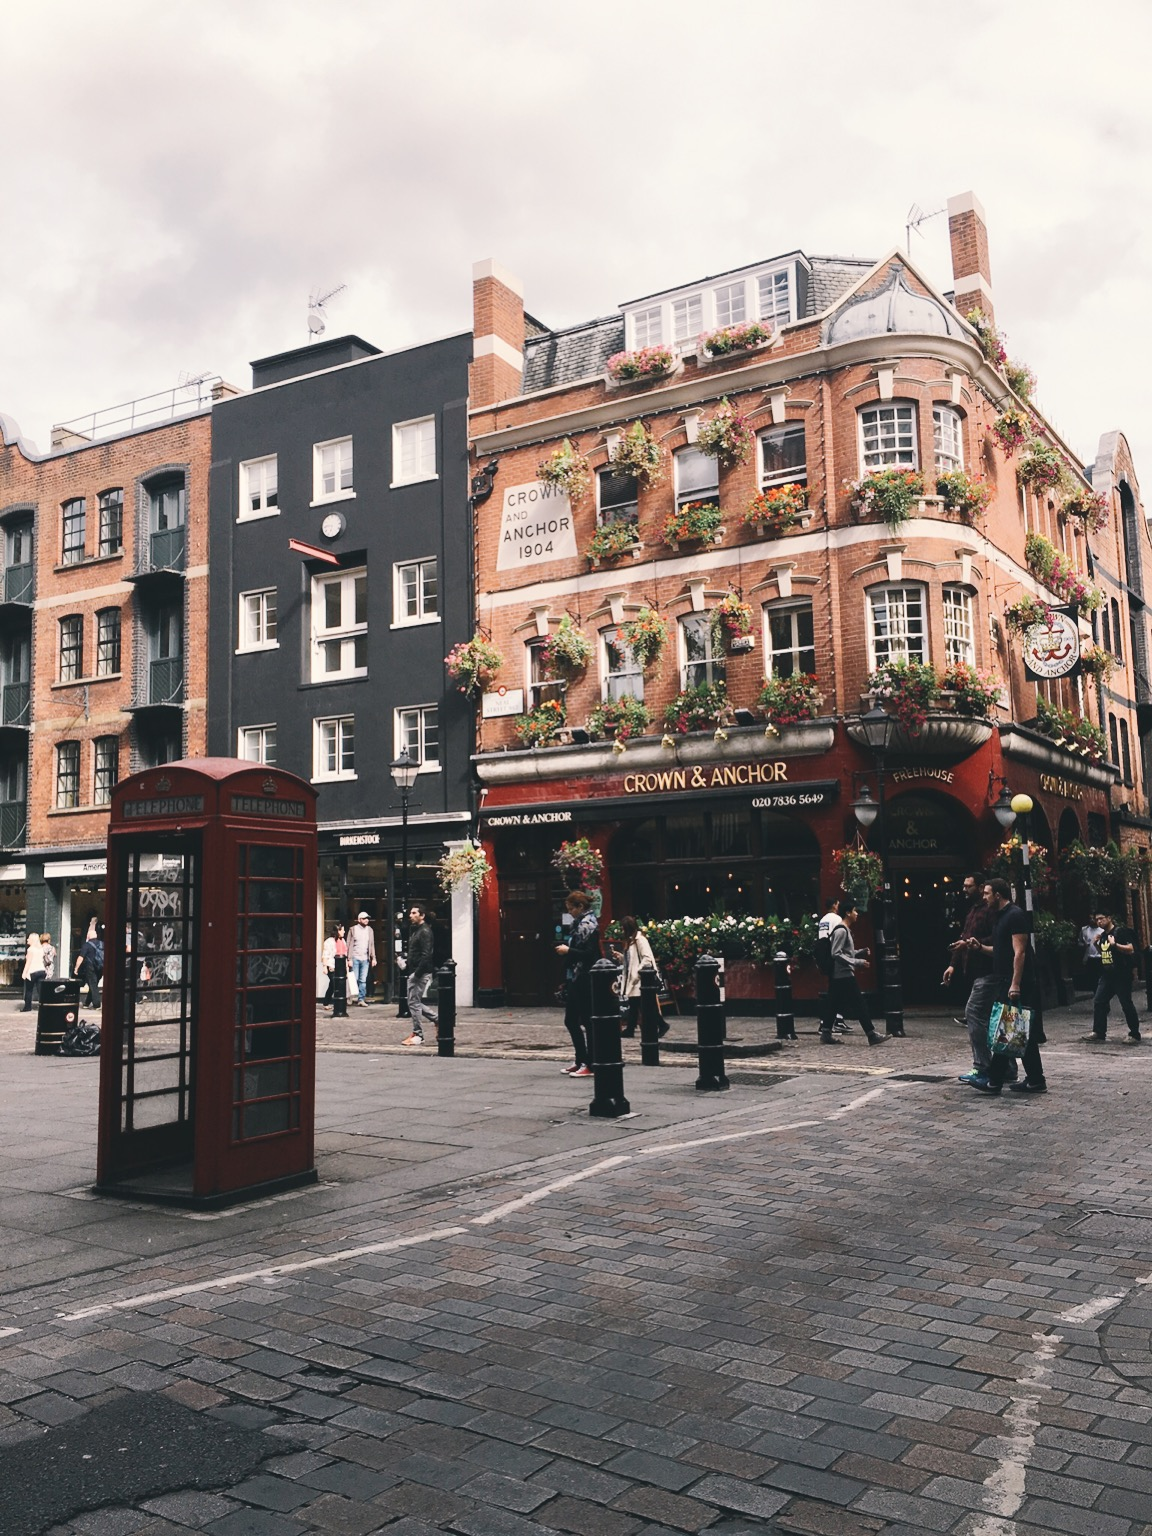 London pub and phone booth in city center